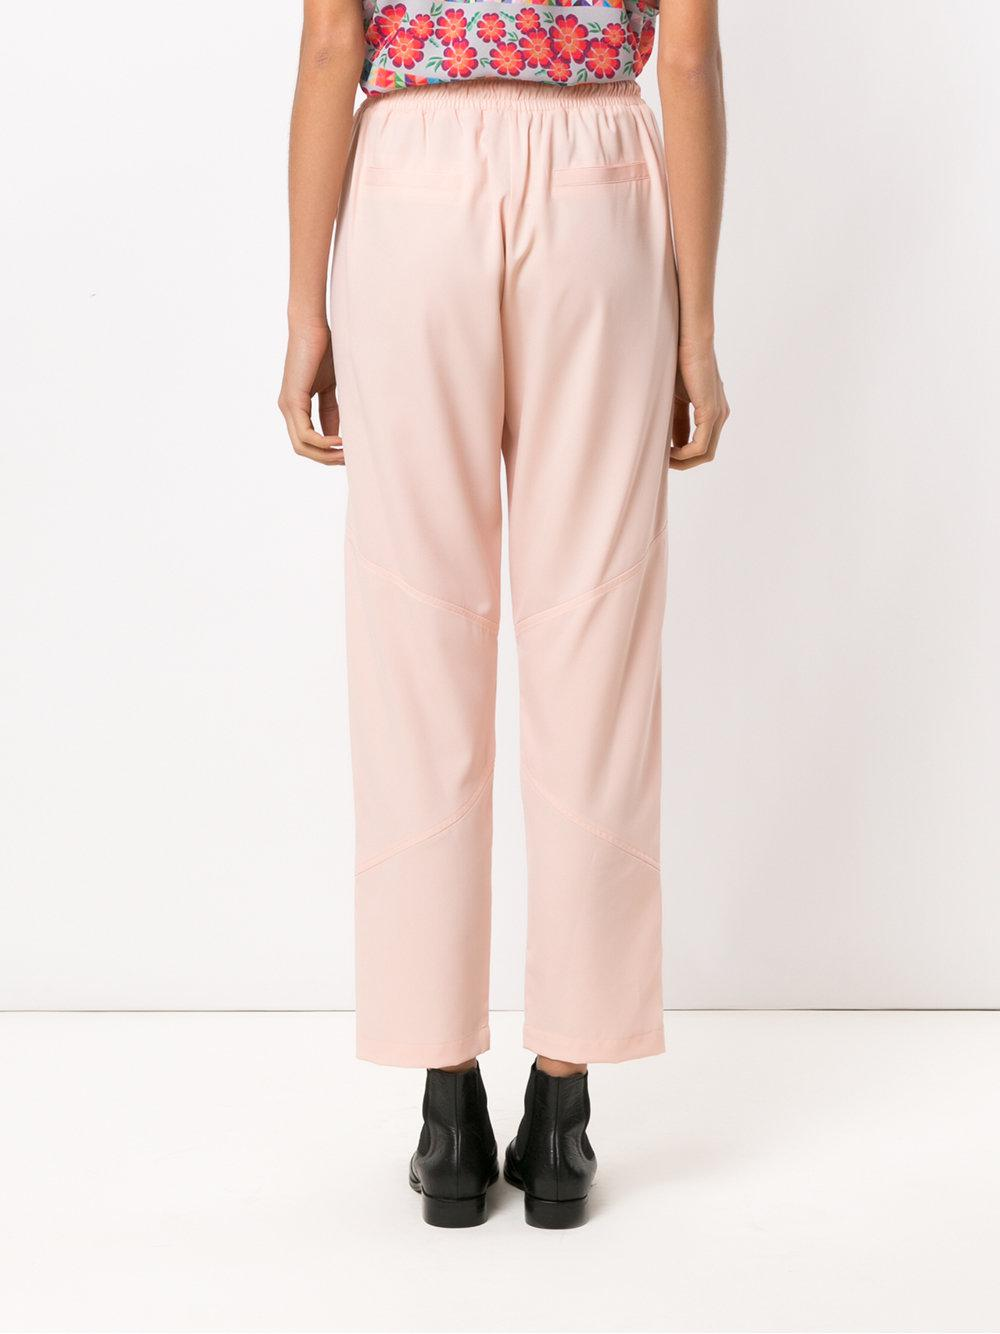 Peru straight trousers - Nude & Neutrals OLYMPIAH rozMCsS5LF